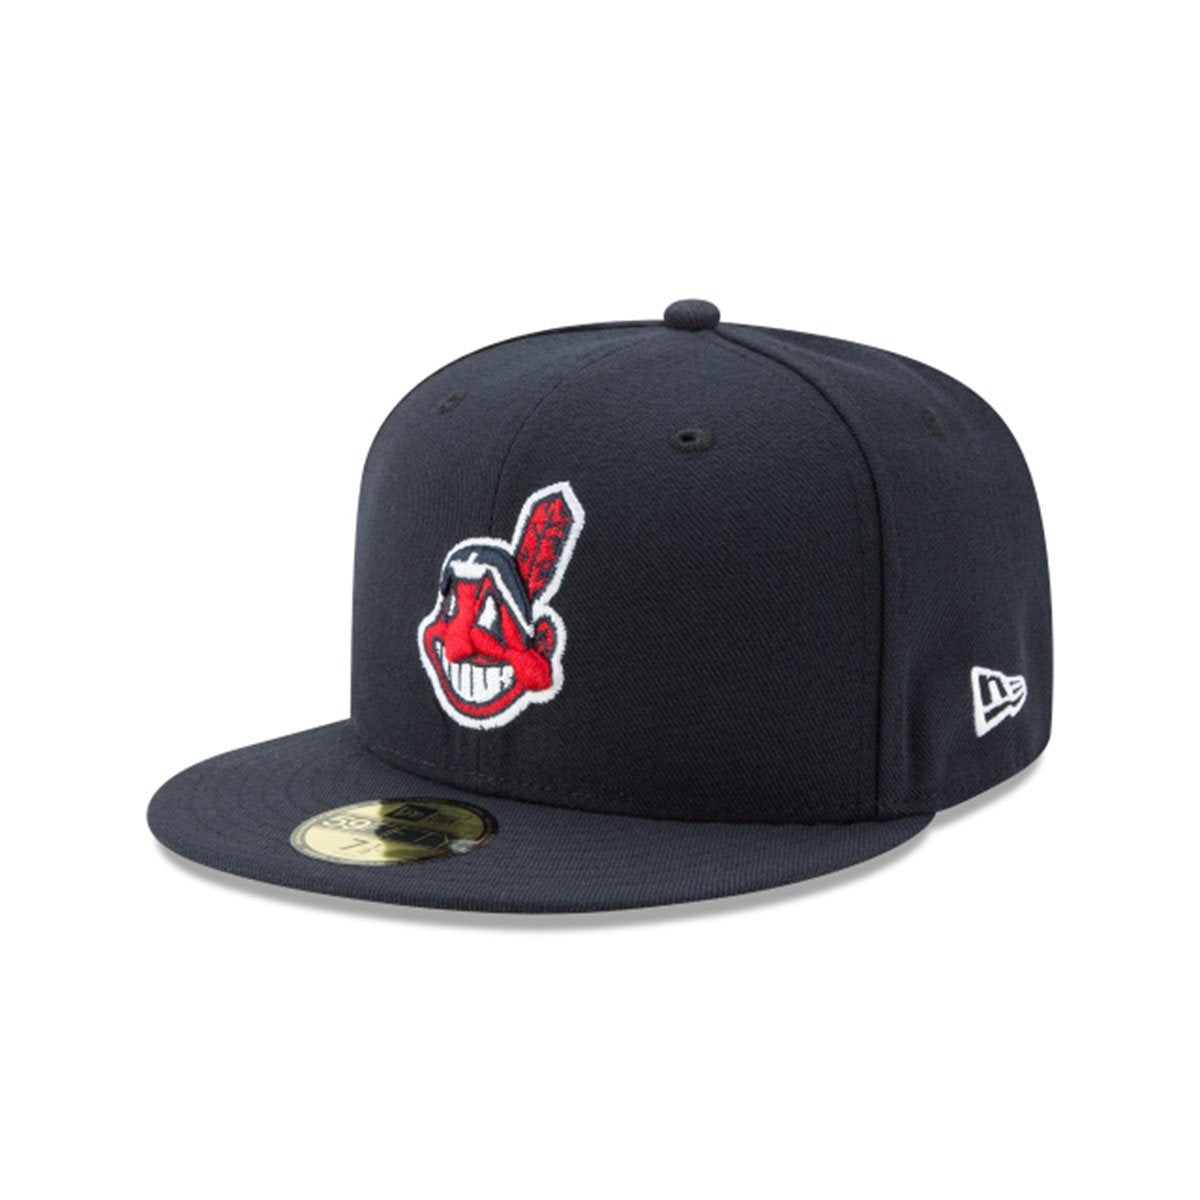 CLEVELAND INDIANS 59FIFTY FITTED BLACK/RED